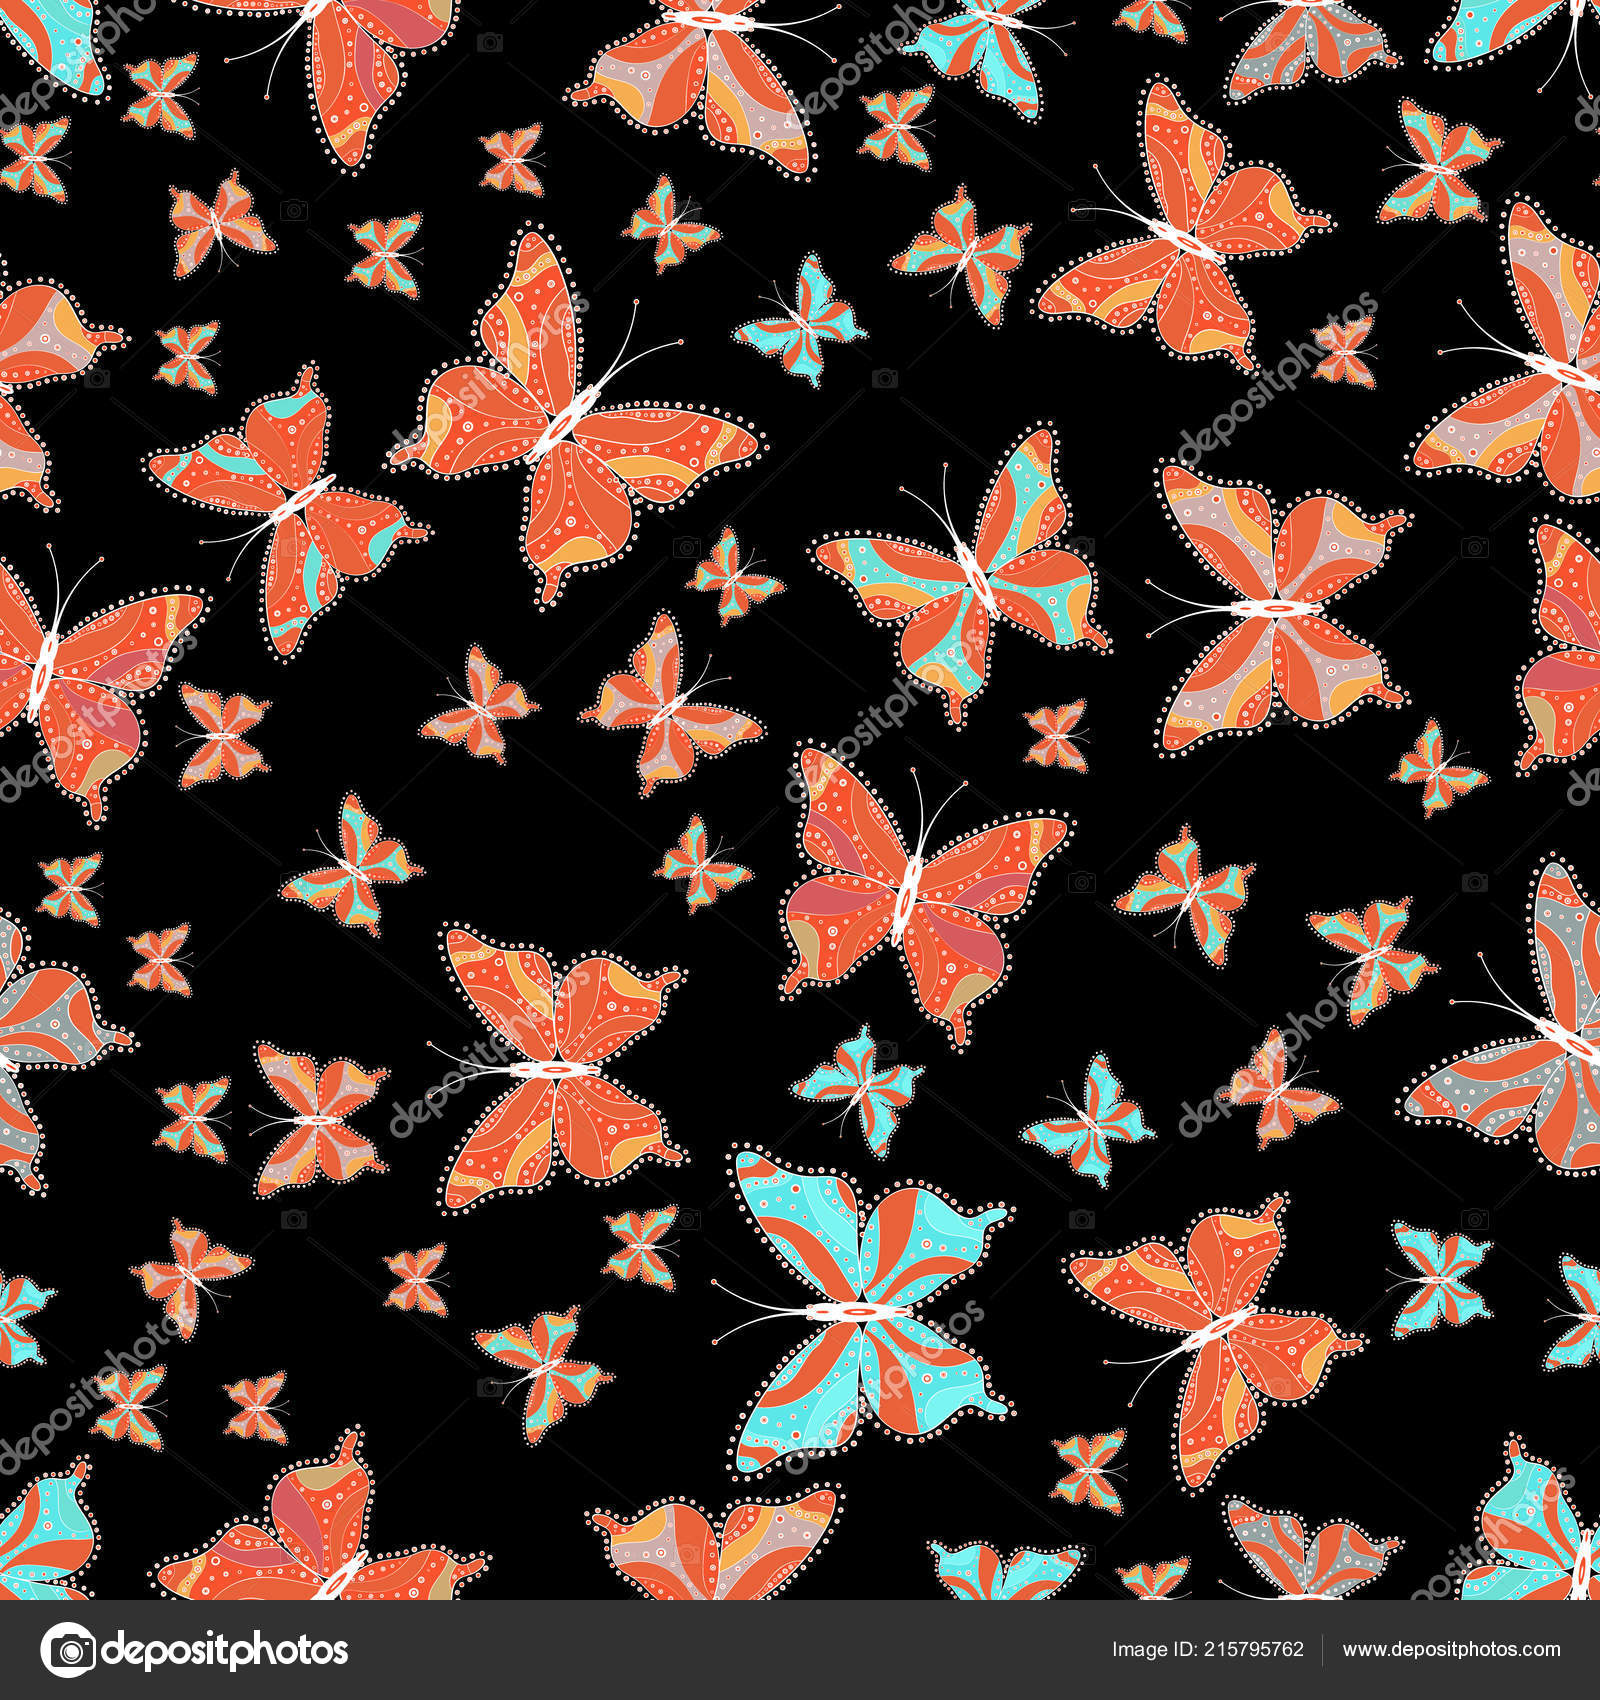 Background Cute Paper Cute Background Paper Design Fabric Wrappers Wallpaper Art Butterflies Black Stock Vector C Valera197615 215795762